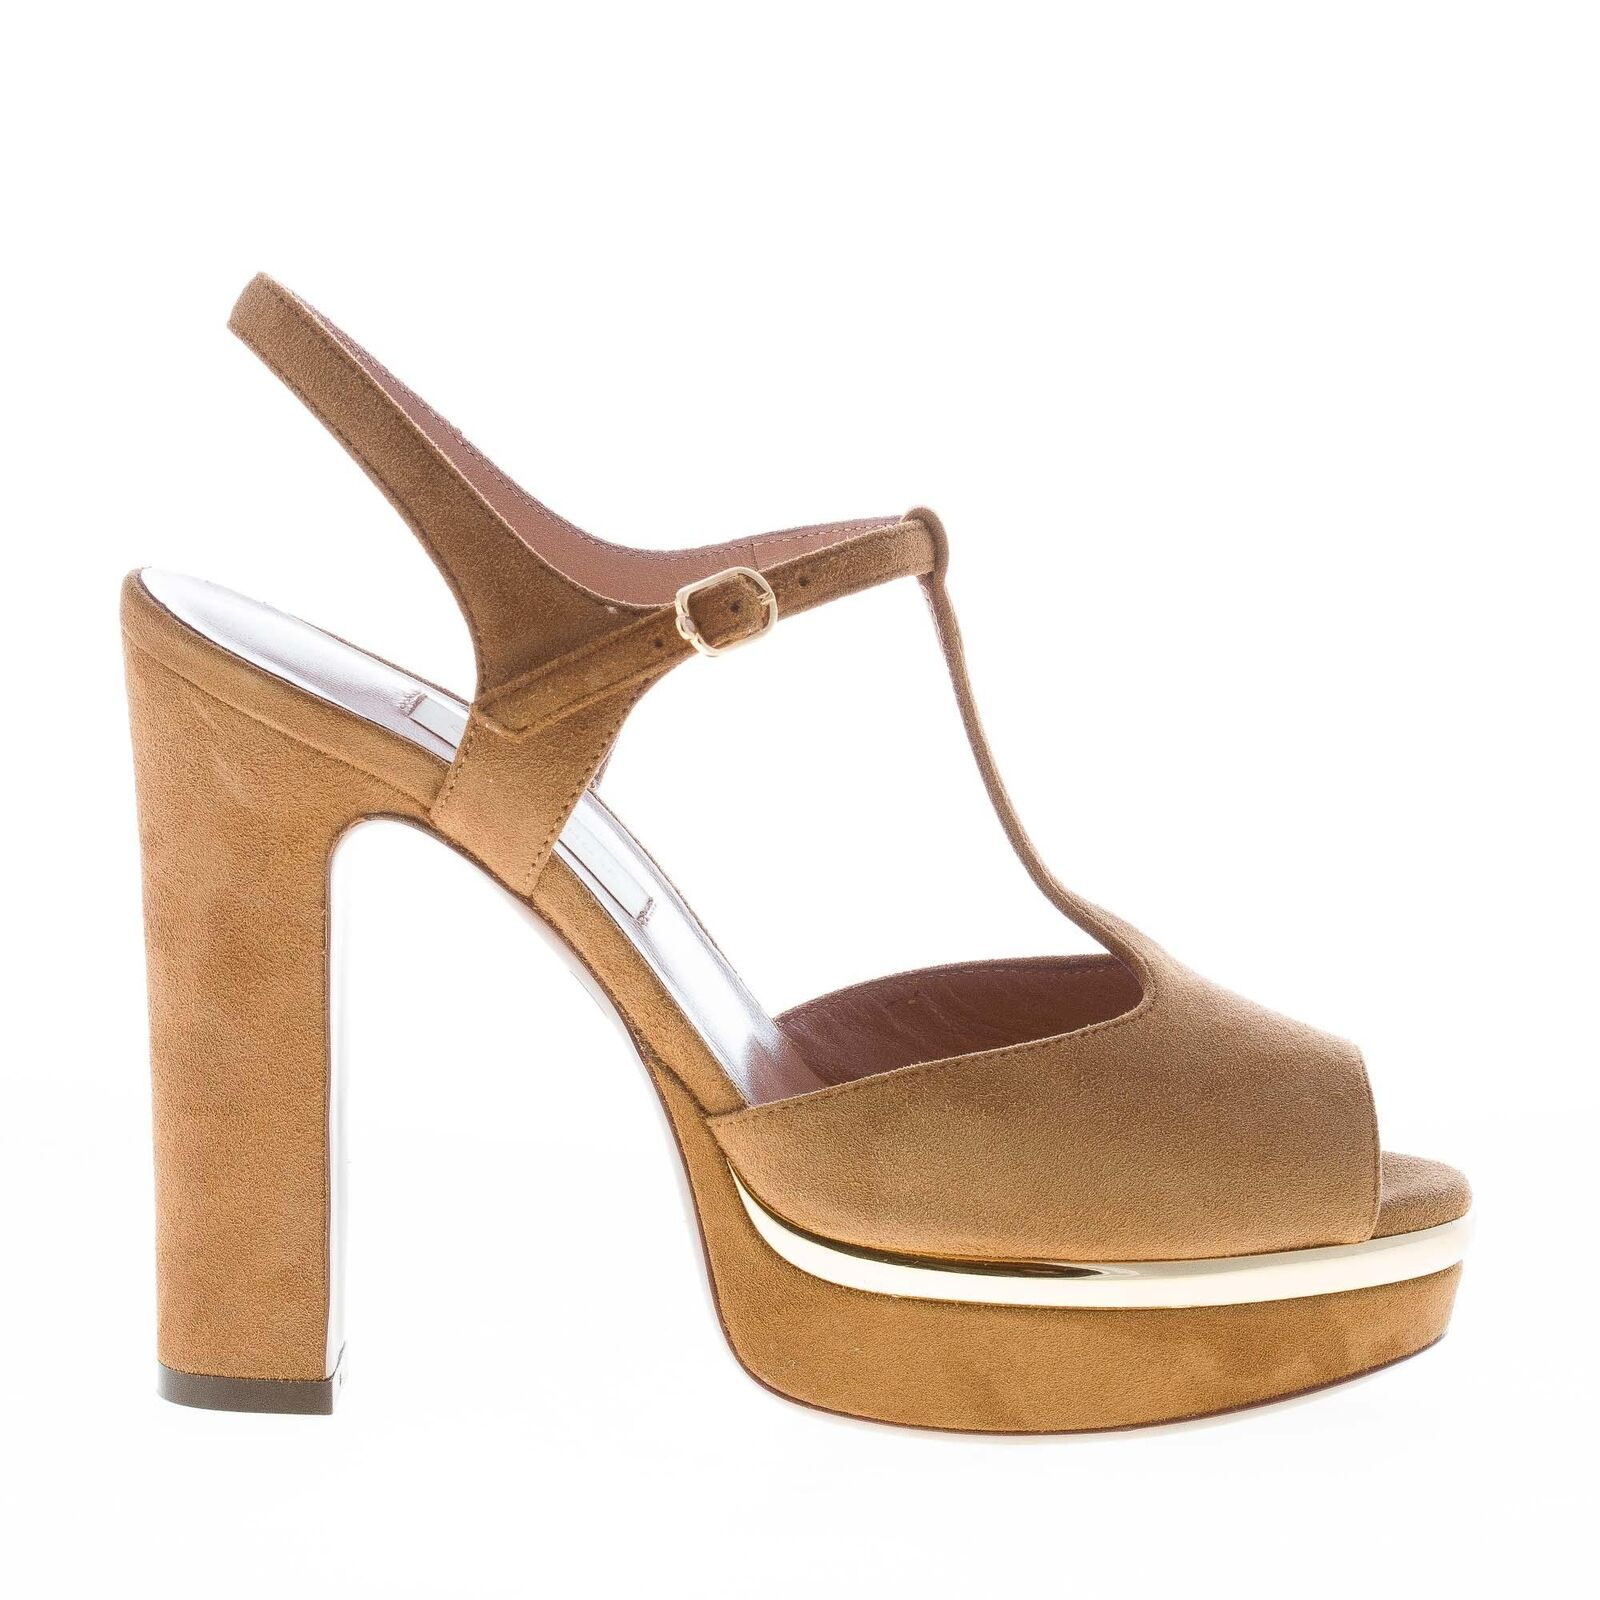 L'AUTRE CHOSE women's shoes shoes Camel Suede T-Strap Sandal with gold-Tone Metal